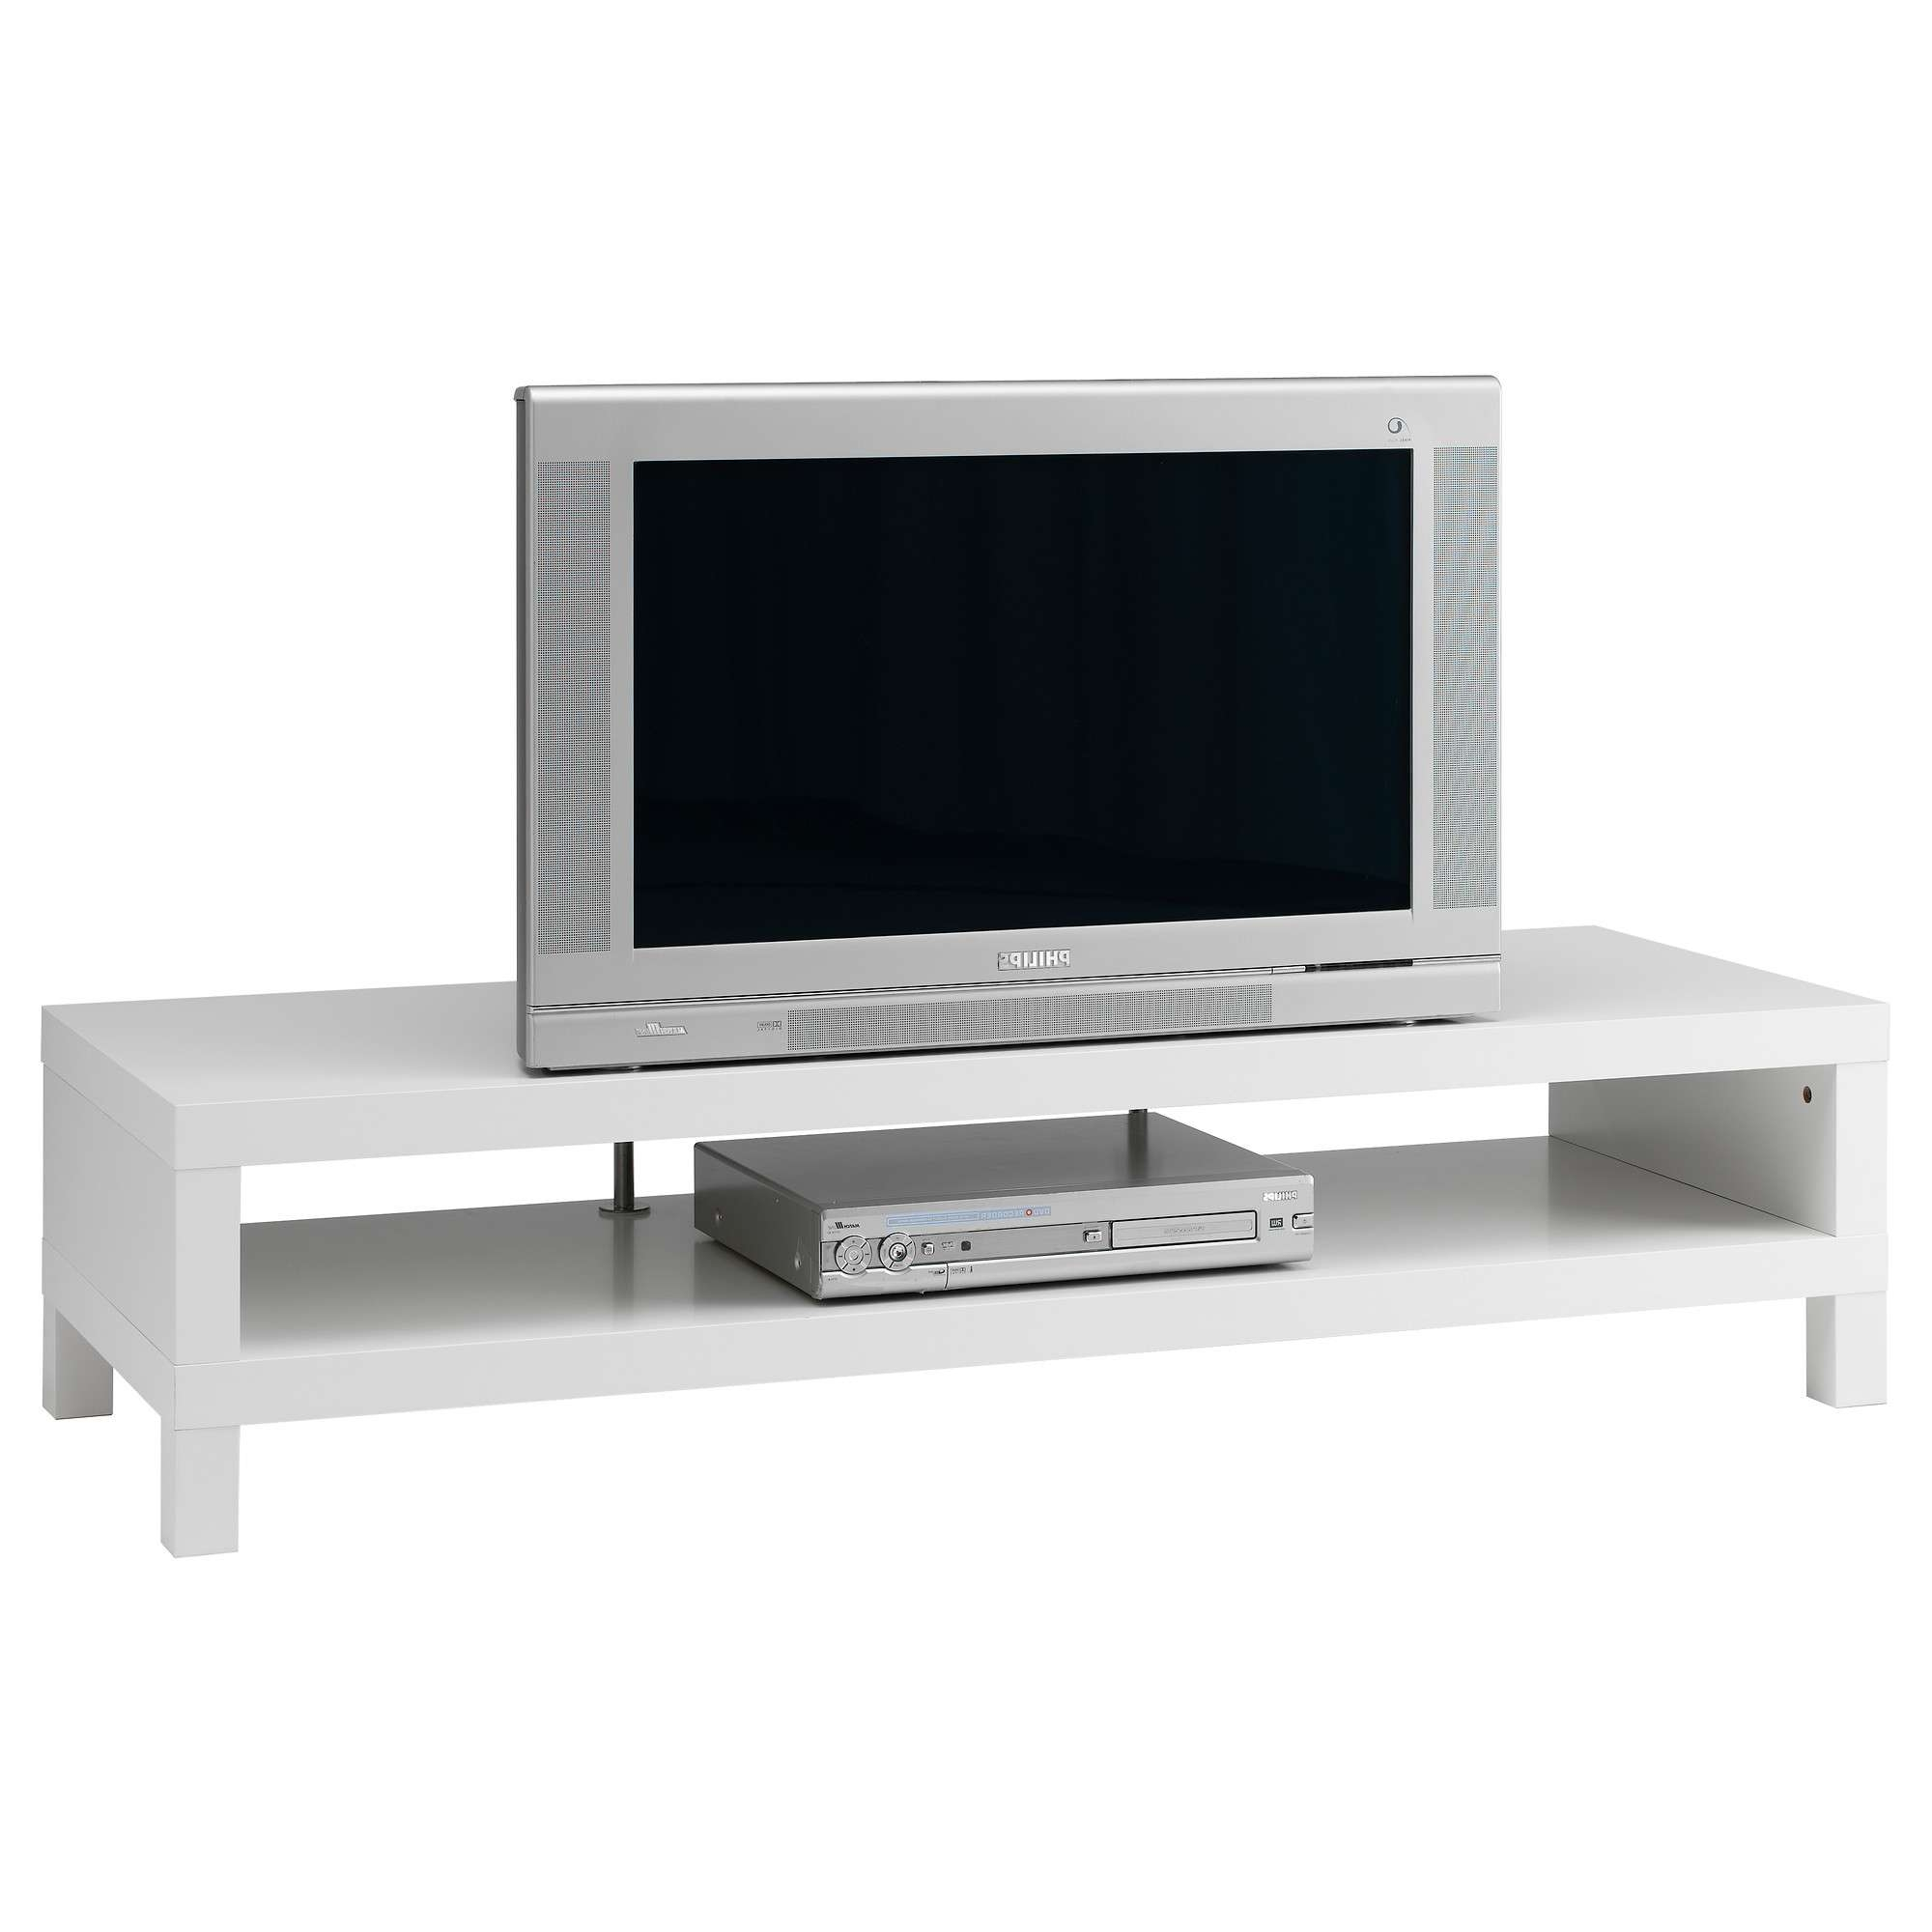 Lack Tv Bench White 149X55 Cm – Ikea With Regard To Bench Tv Stands (View 9 of 15)